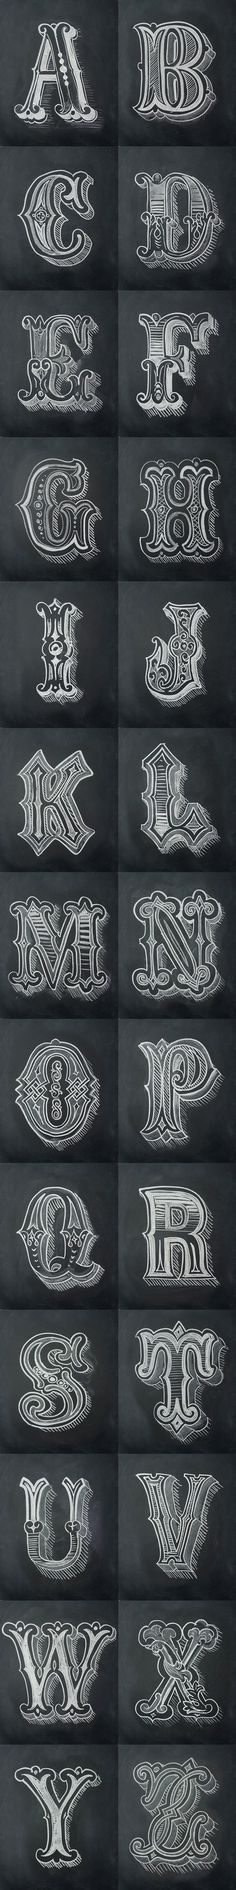 Chalk Alphabet by Antonio Rodrigues Jr #Art #Chalkboard